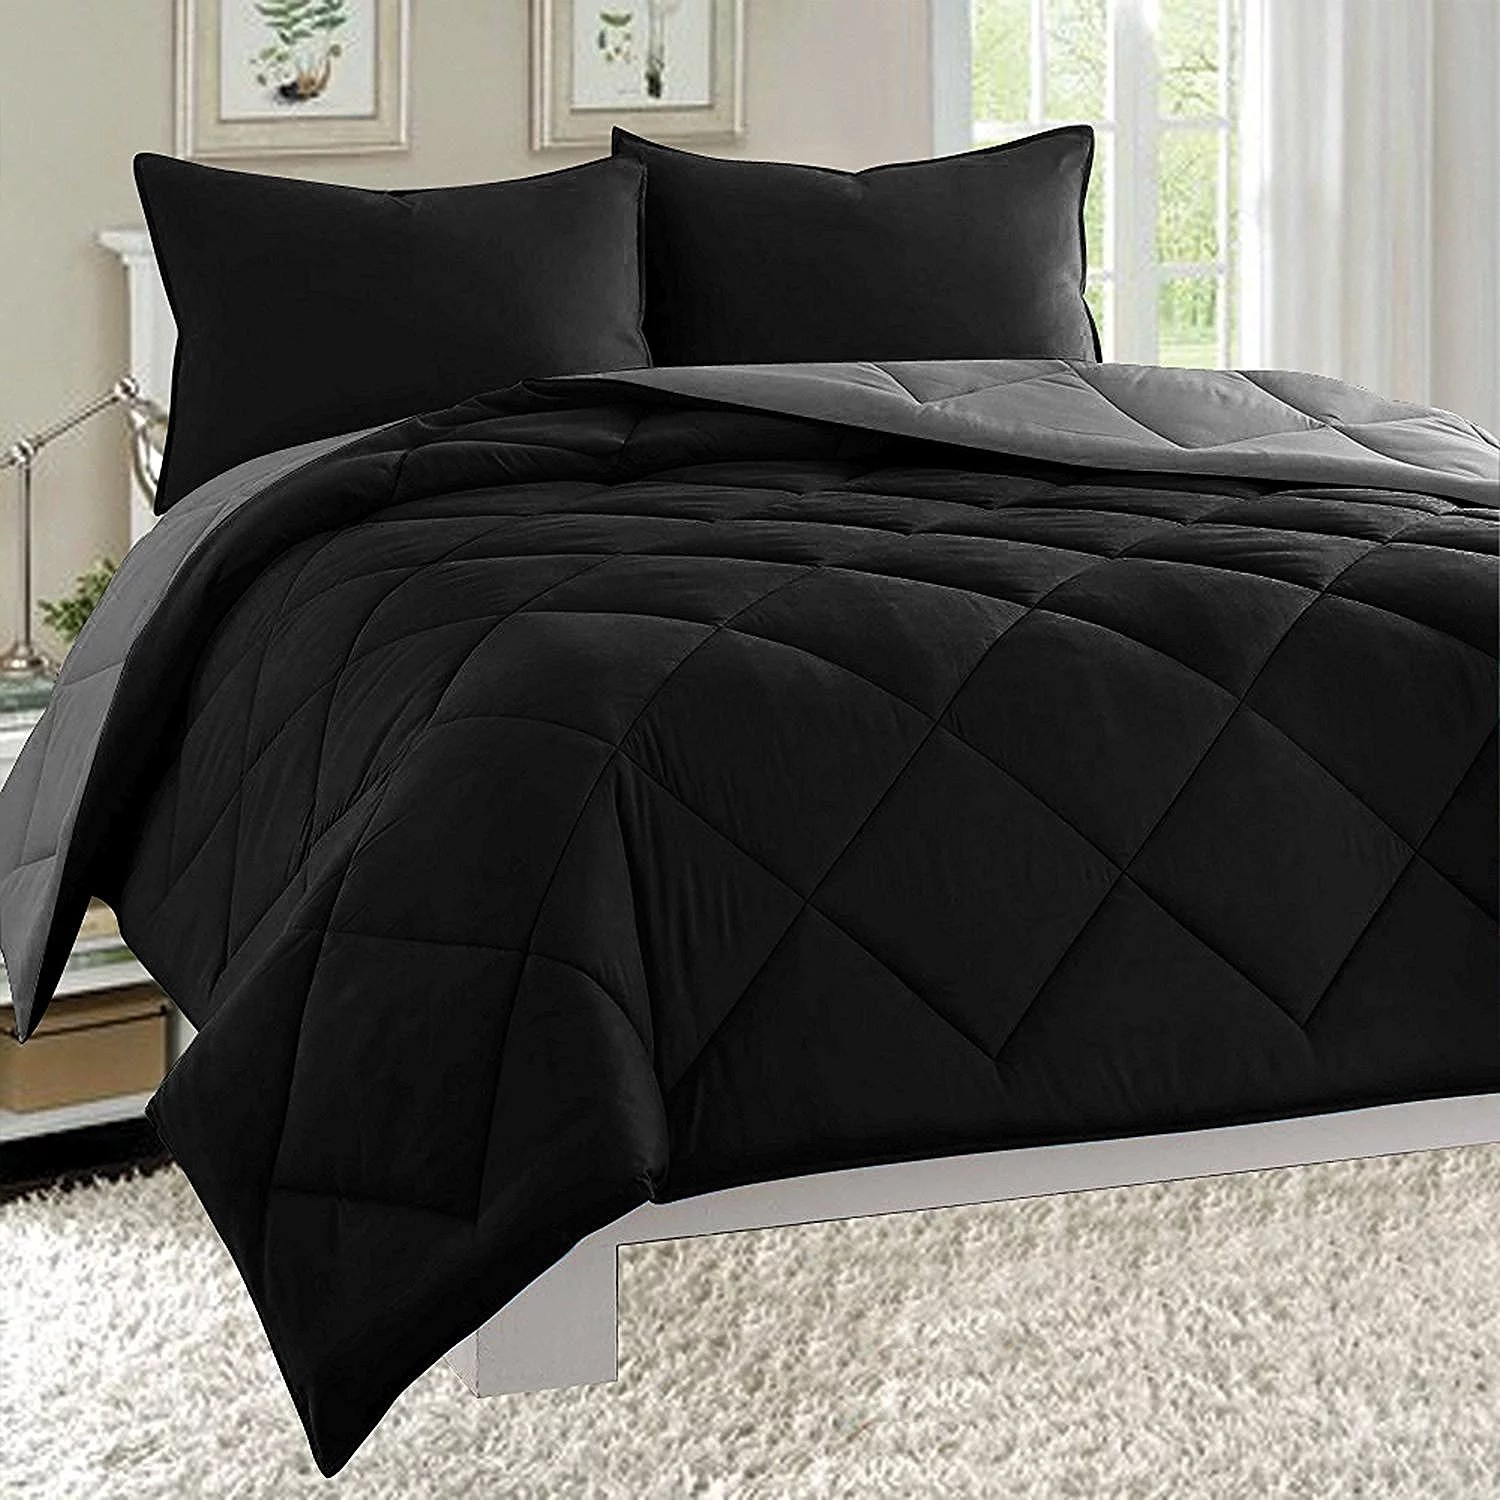 Goose Down Close Out Deal , High Quality 3pc Comforter Set-Full/Queen, Black/Gray